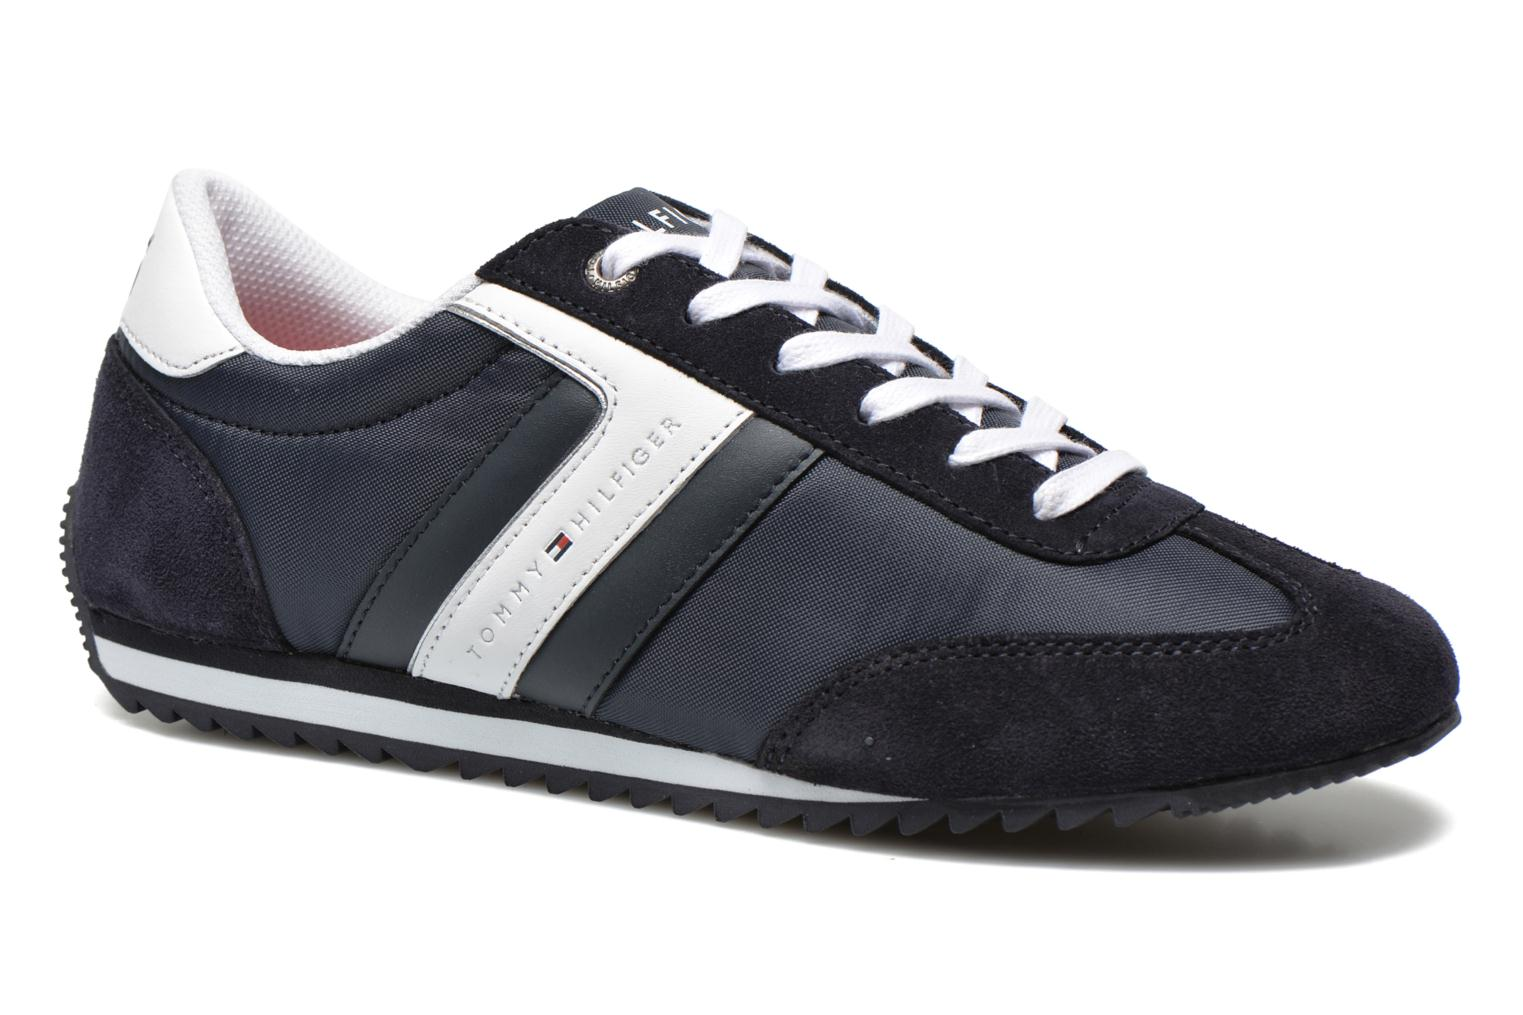 Sneakers Branson 8C_1 by Tommy Hilfiger